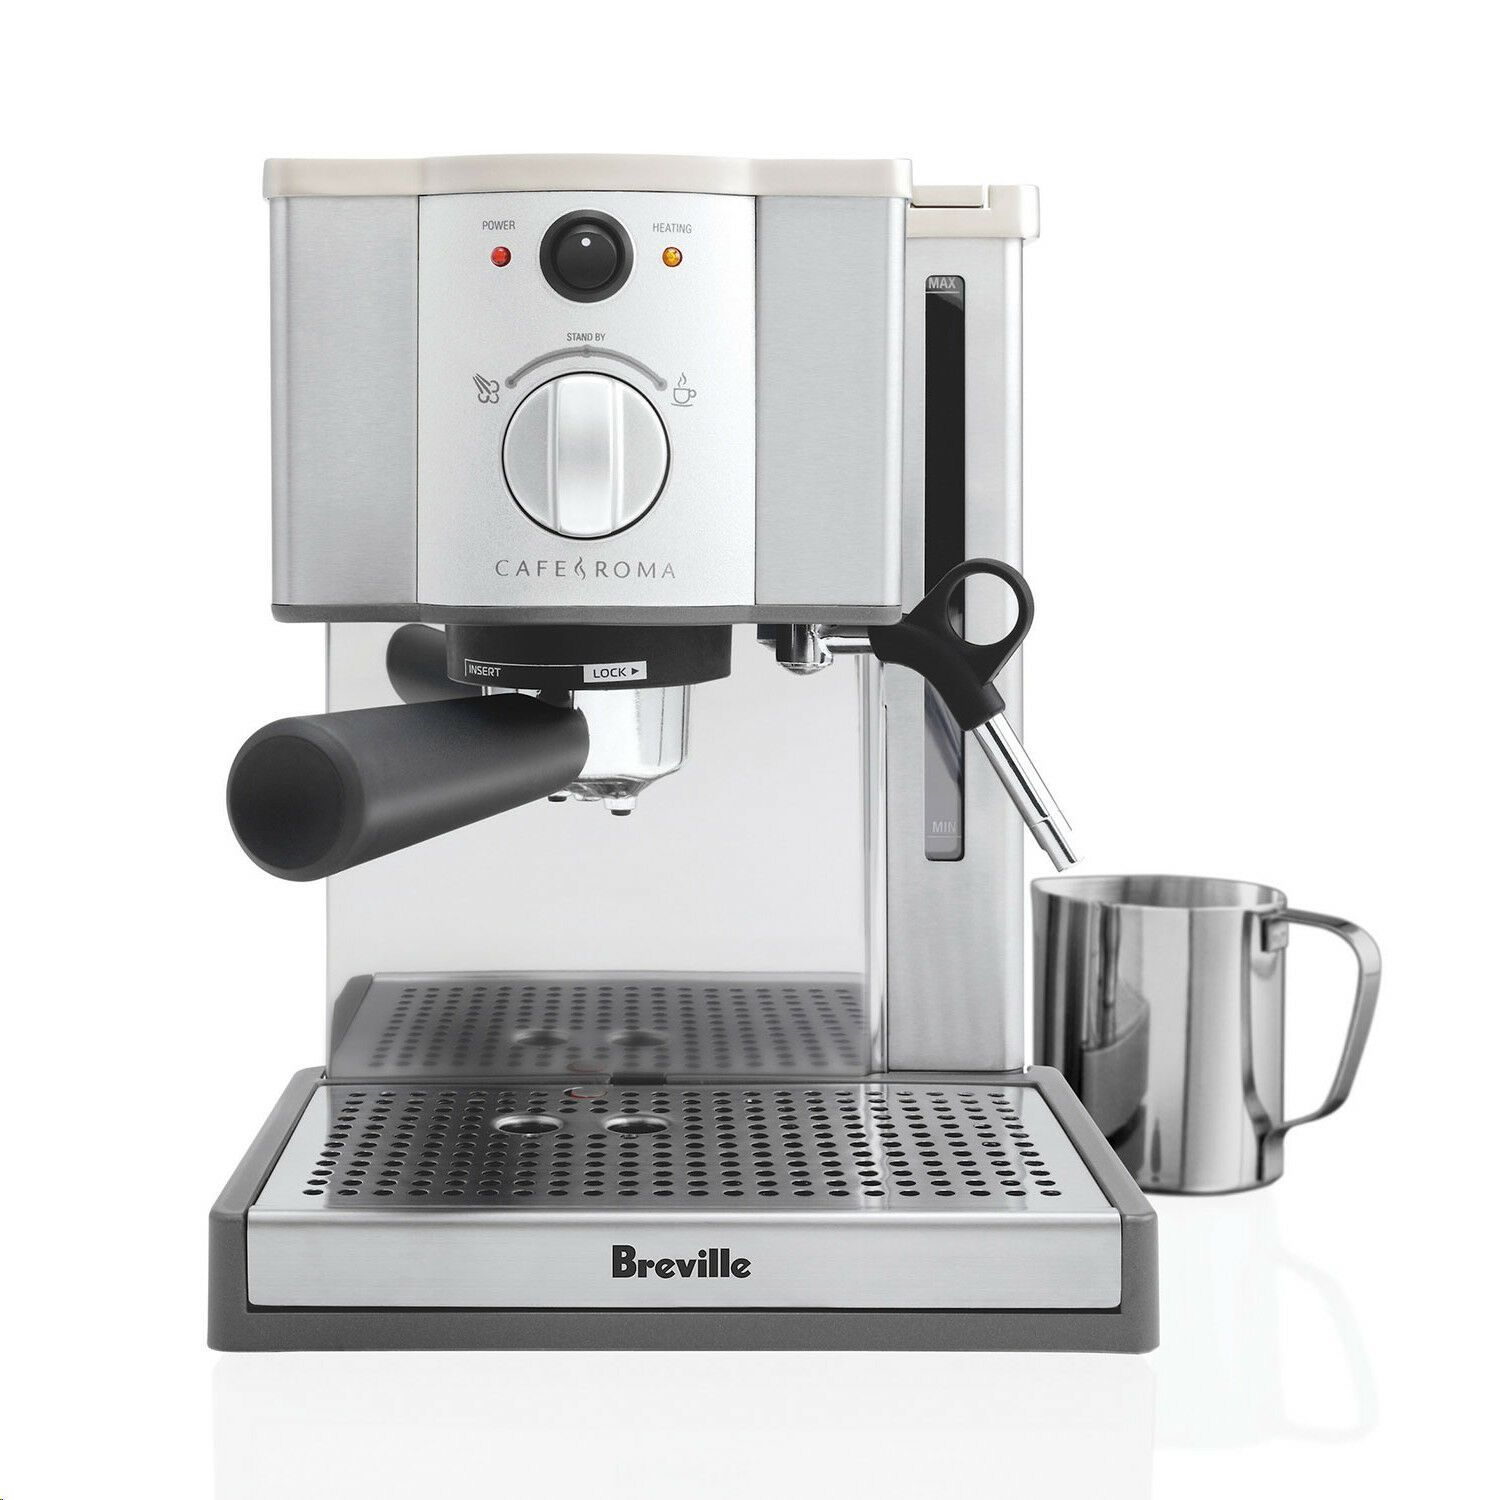 Breville Esp8xl Cafe Roma Stainless Espresso Maker 21614034274 Ebay In 2020 Breville Espresso Machine Breville Cafe Roma Espresso Machine Best Espresso Machine